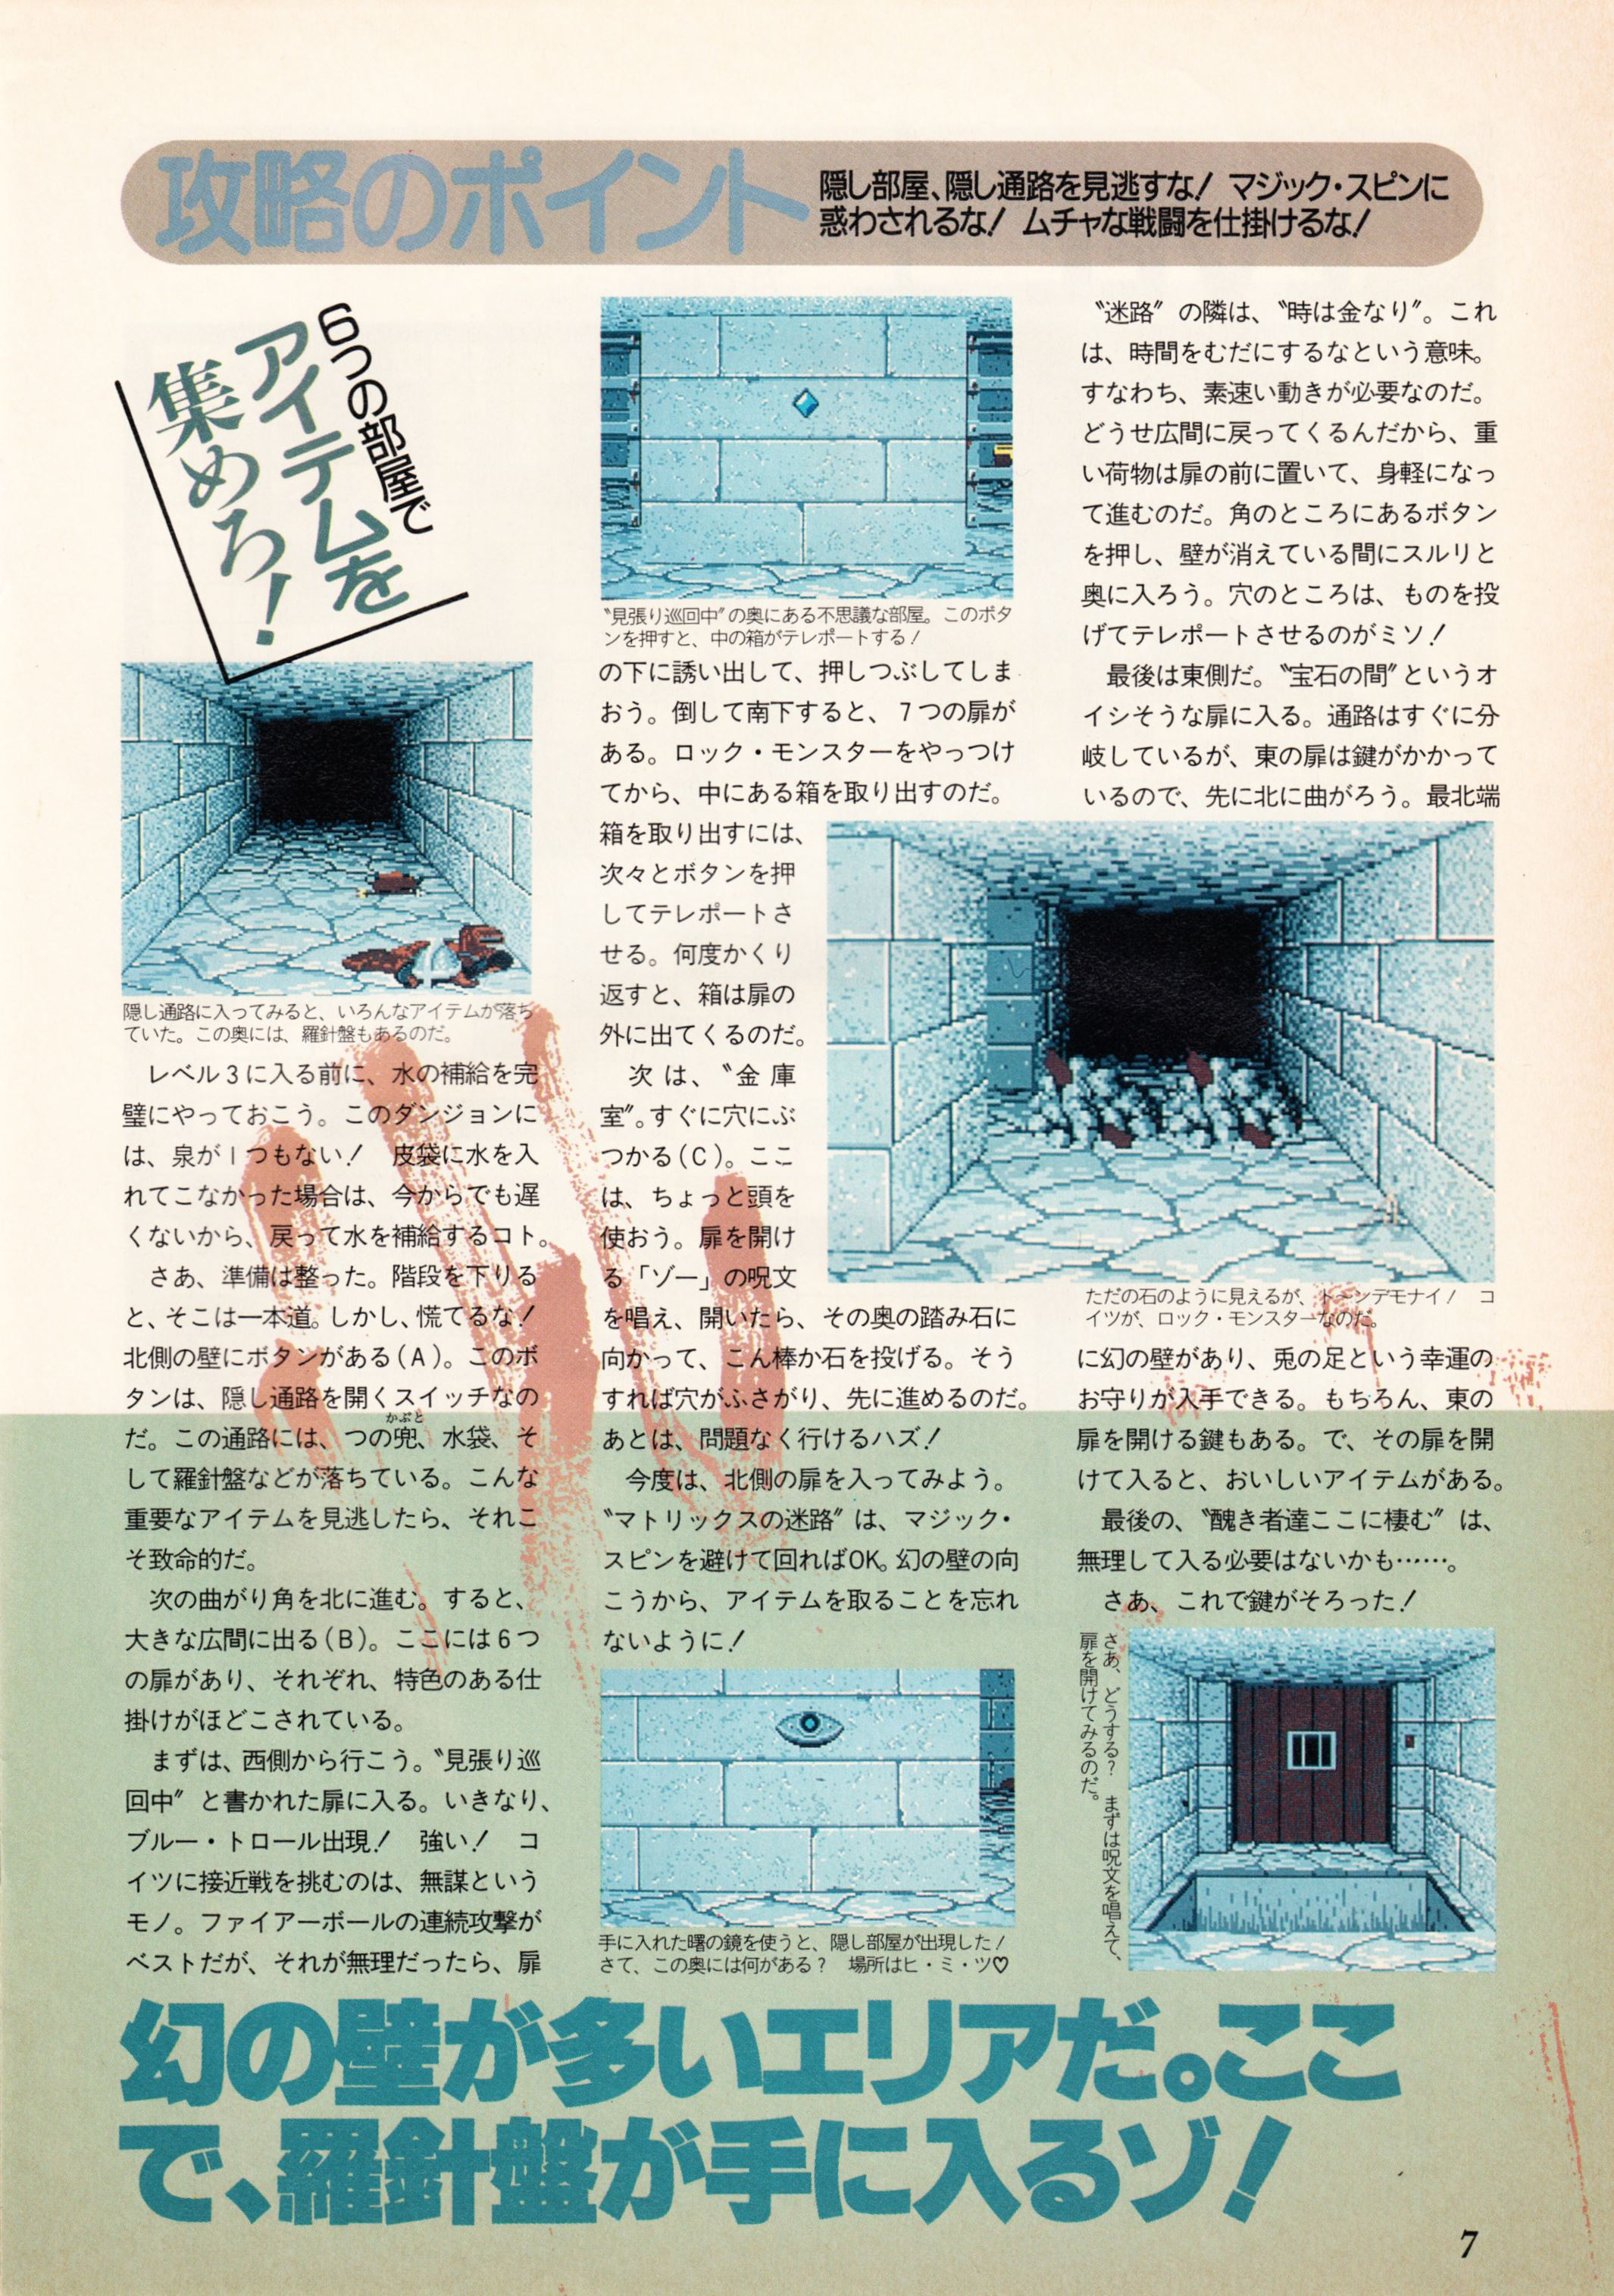 Supplement - Dungeon Master Companion Manual Guide published in Japanese magazine 'Popcom', Vol 4 No 1 01 April 1990, Page 9